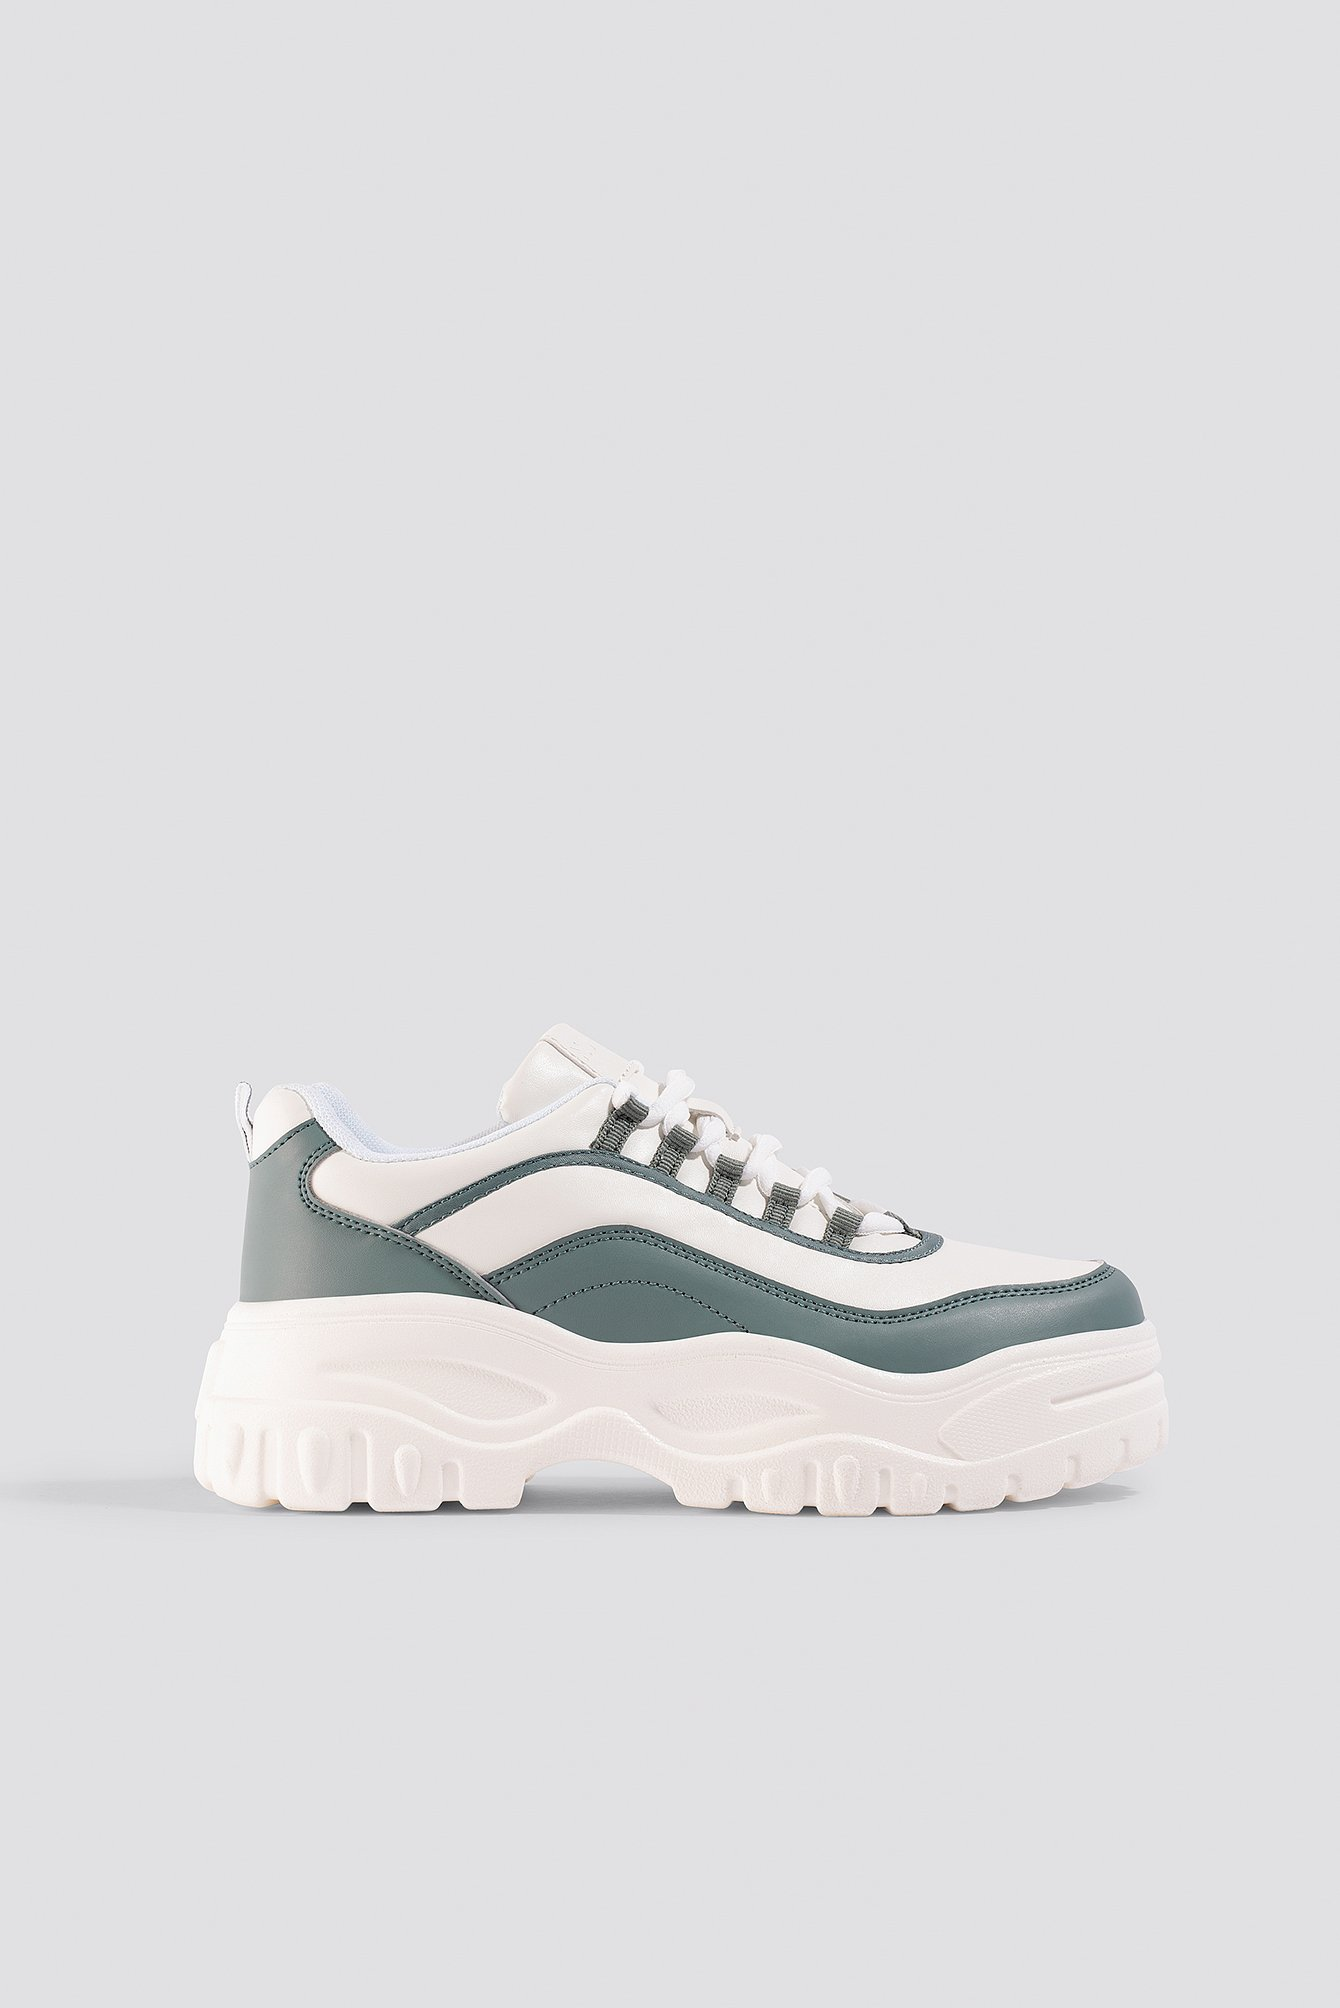 NA-KD Shoes Chunky Sole Sneakers - White,Green